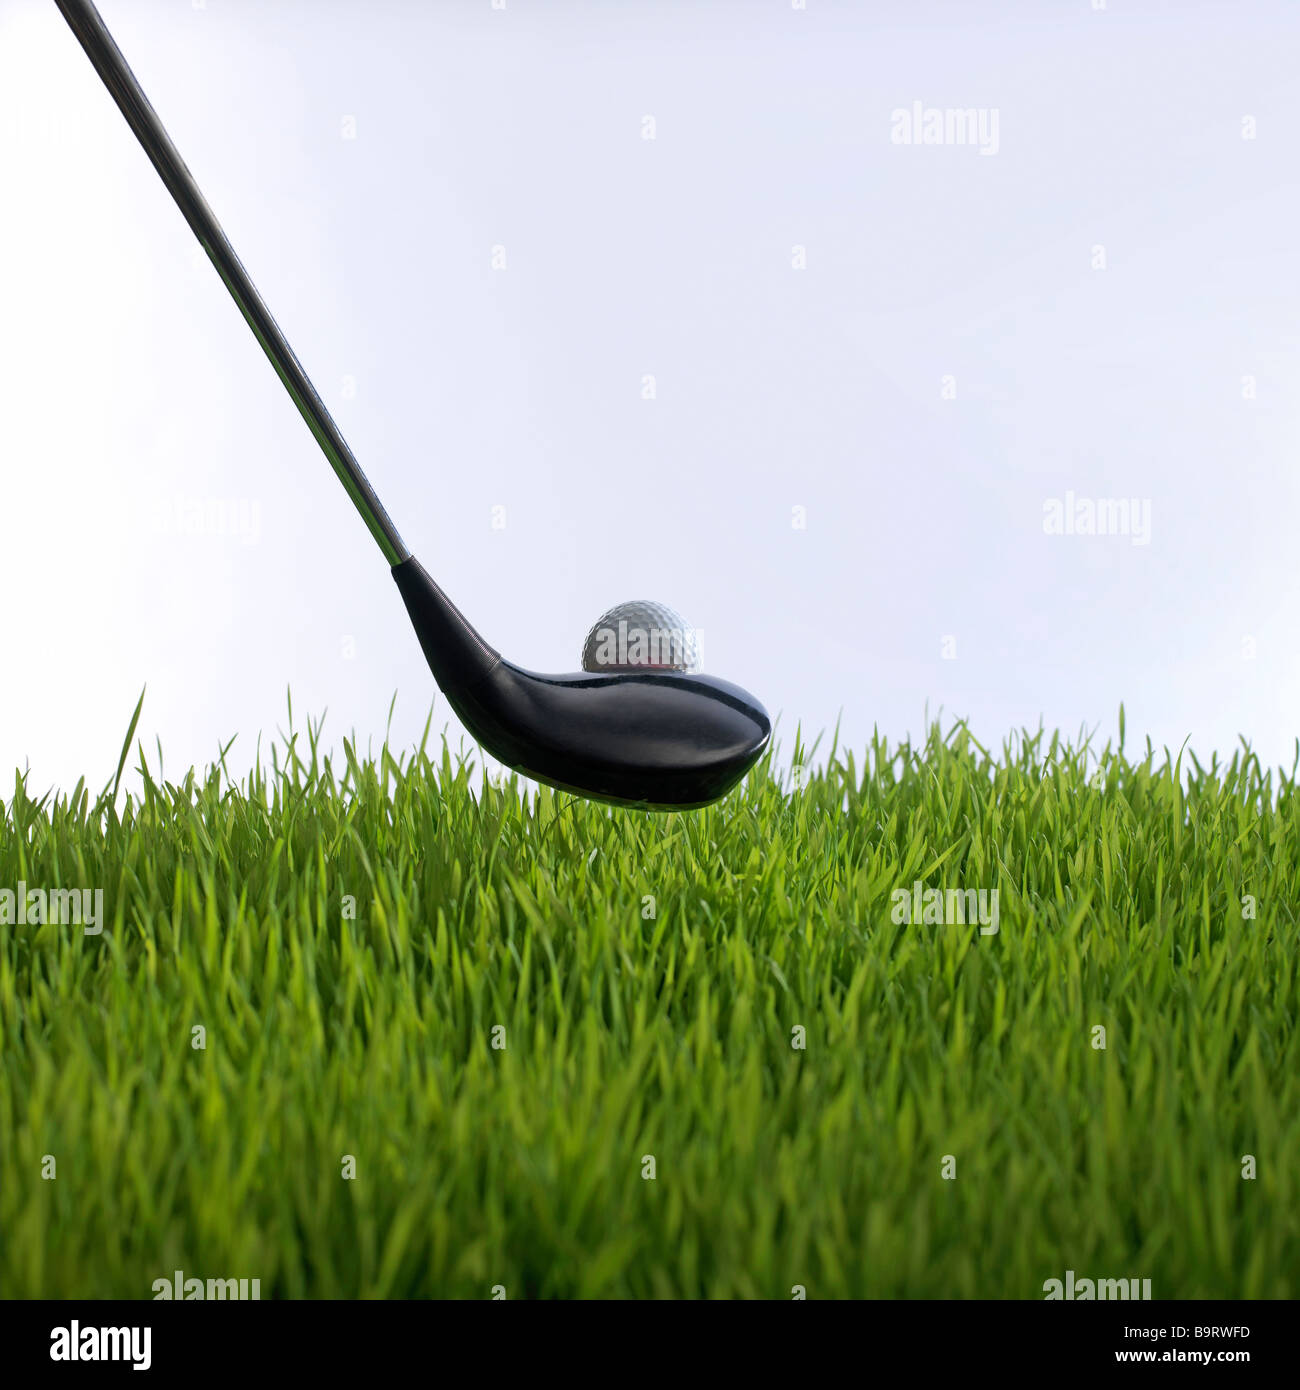 golf club teeing off in grass with golf ball - Stock Image